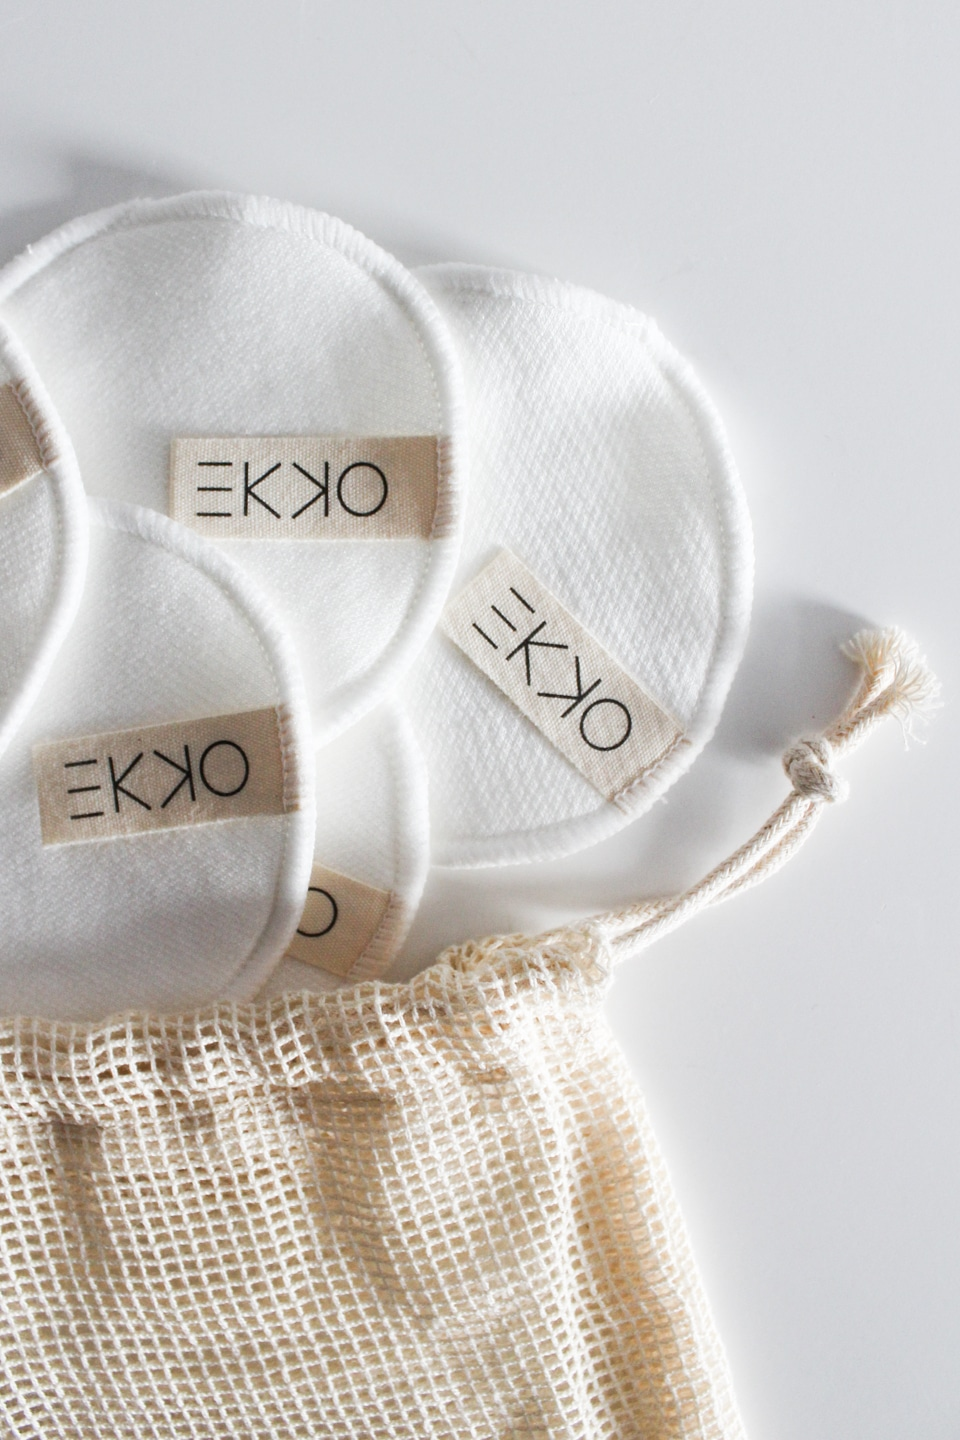 EKKO Cotton rounds